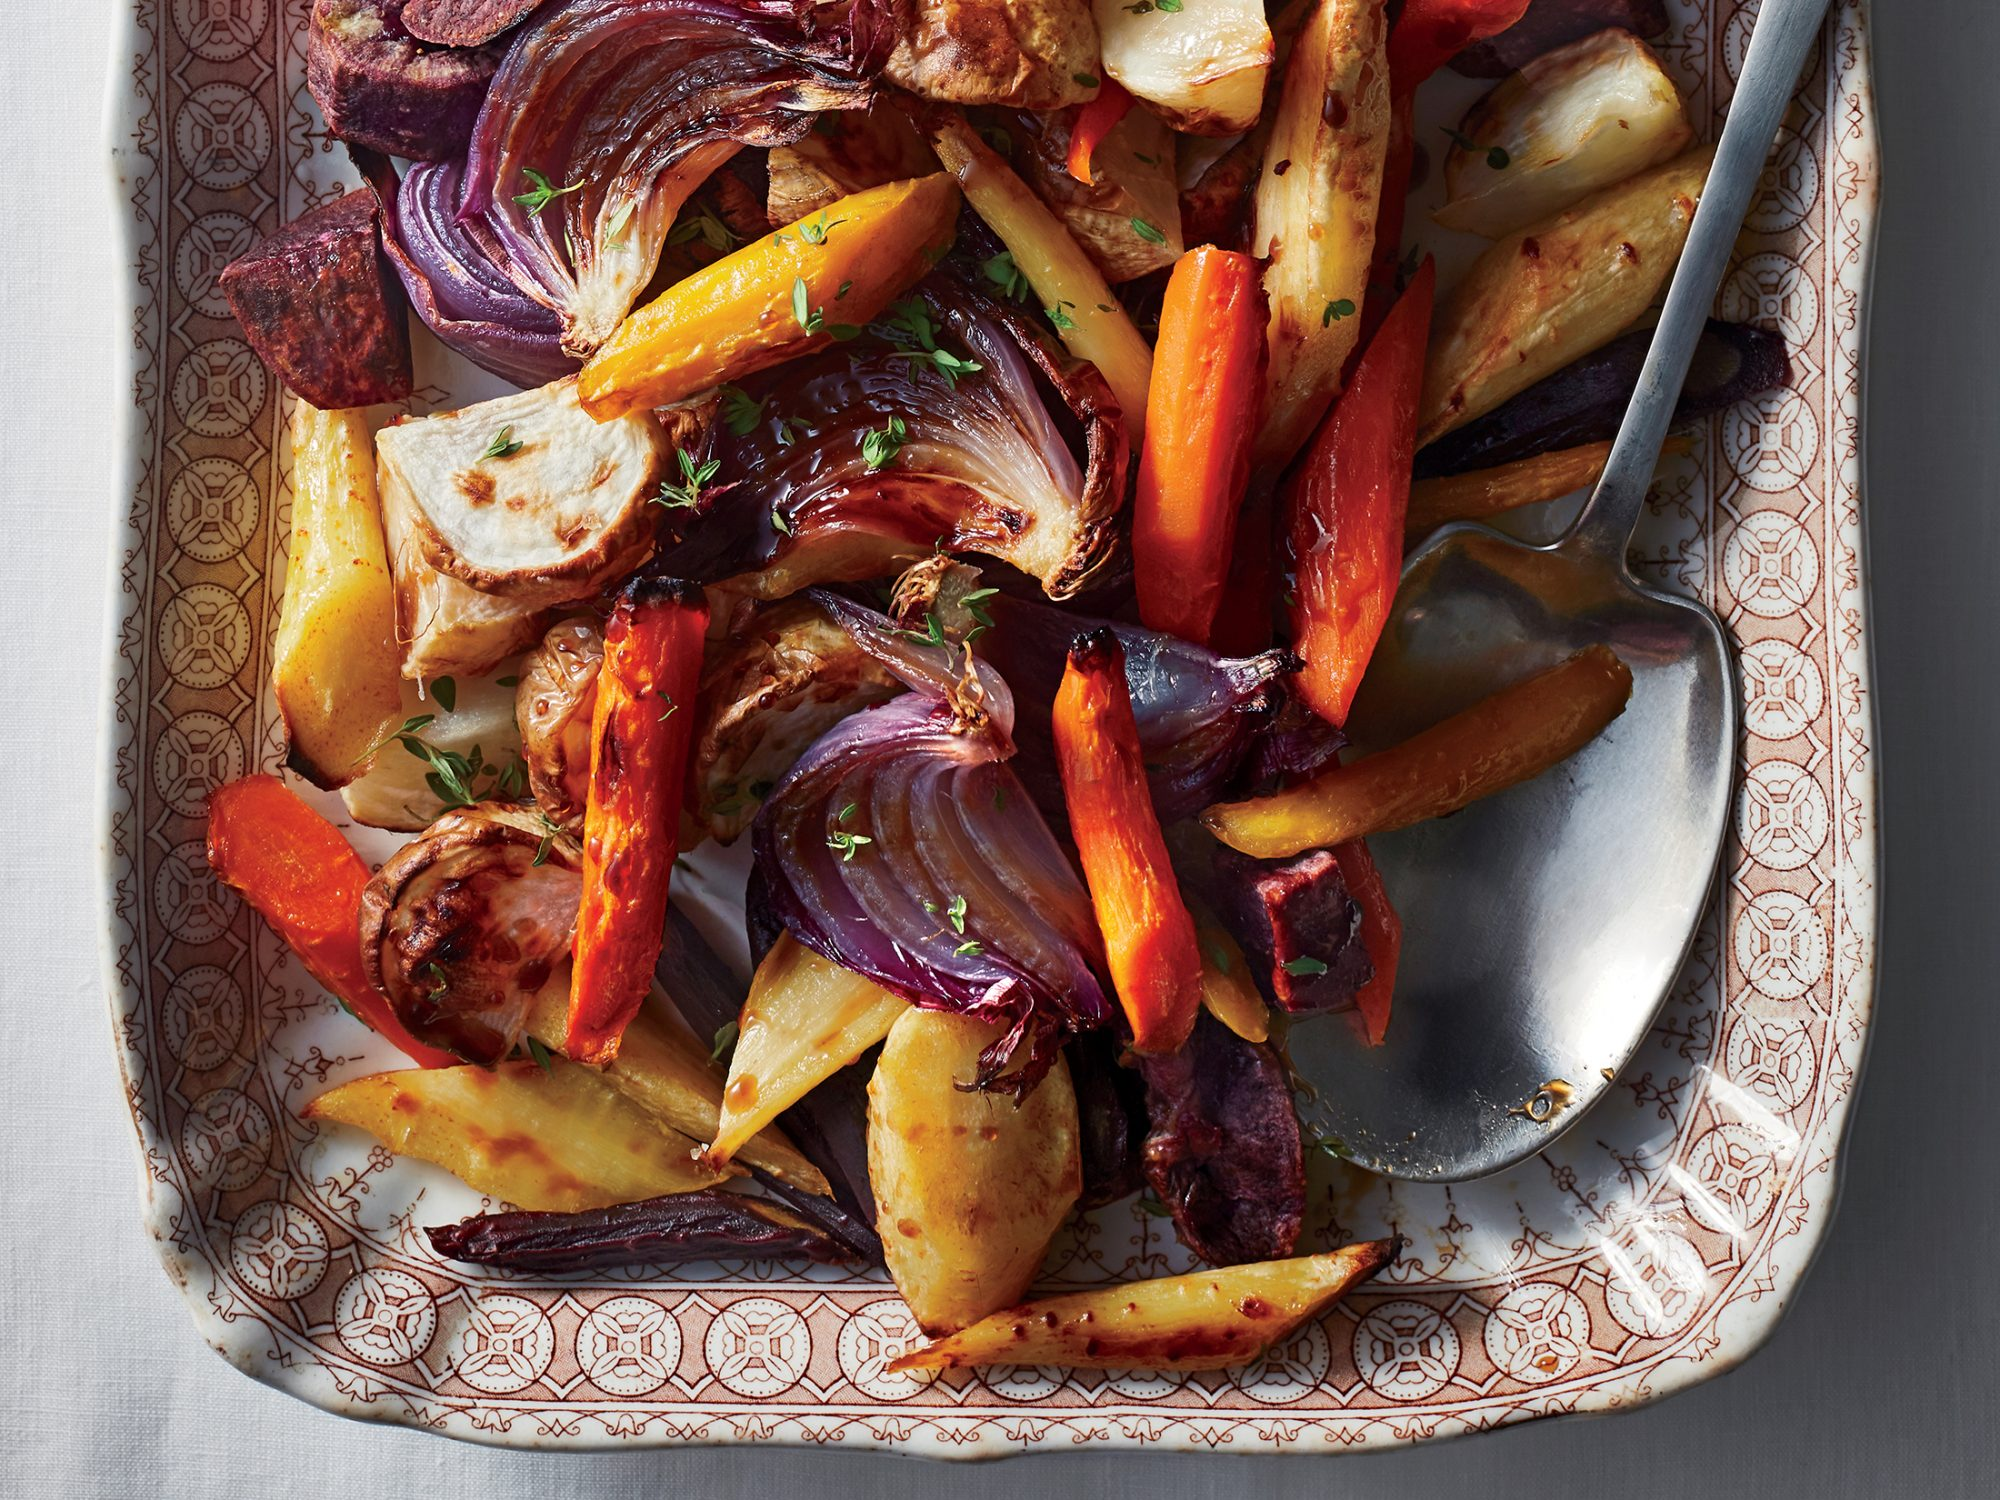 Roasted Root Vegetables With Balsamic-Maple Glaze